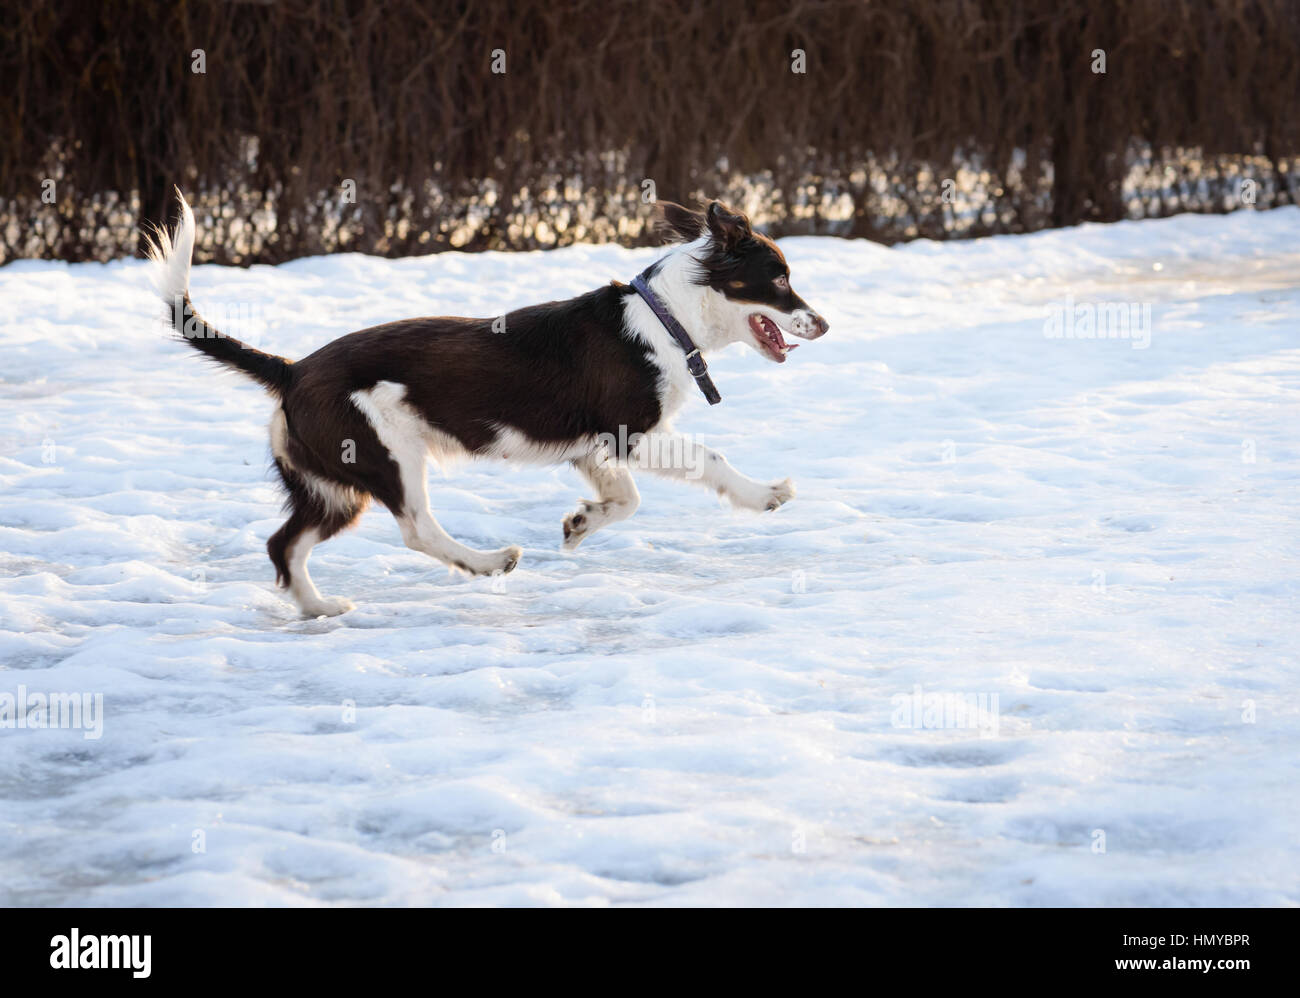 Cute brown and white mixed-breed mongrel dog playing on slippery snow - Stock Image